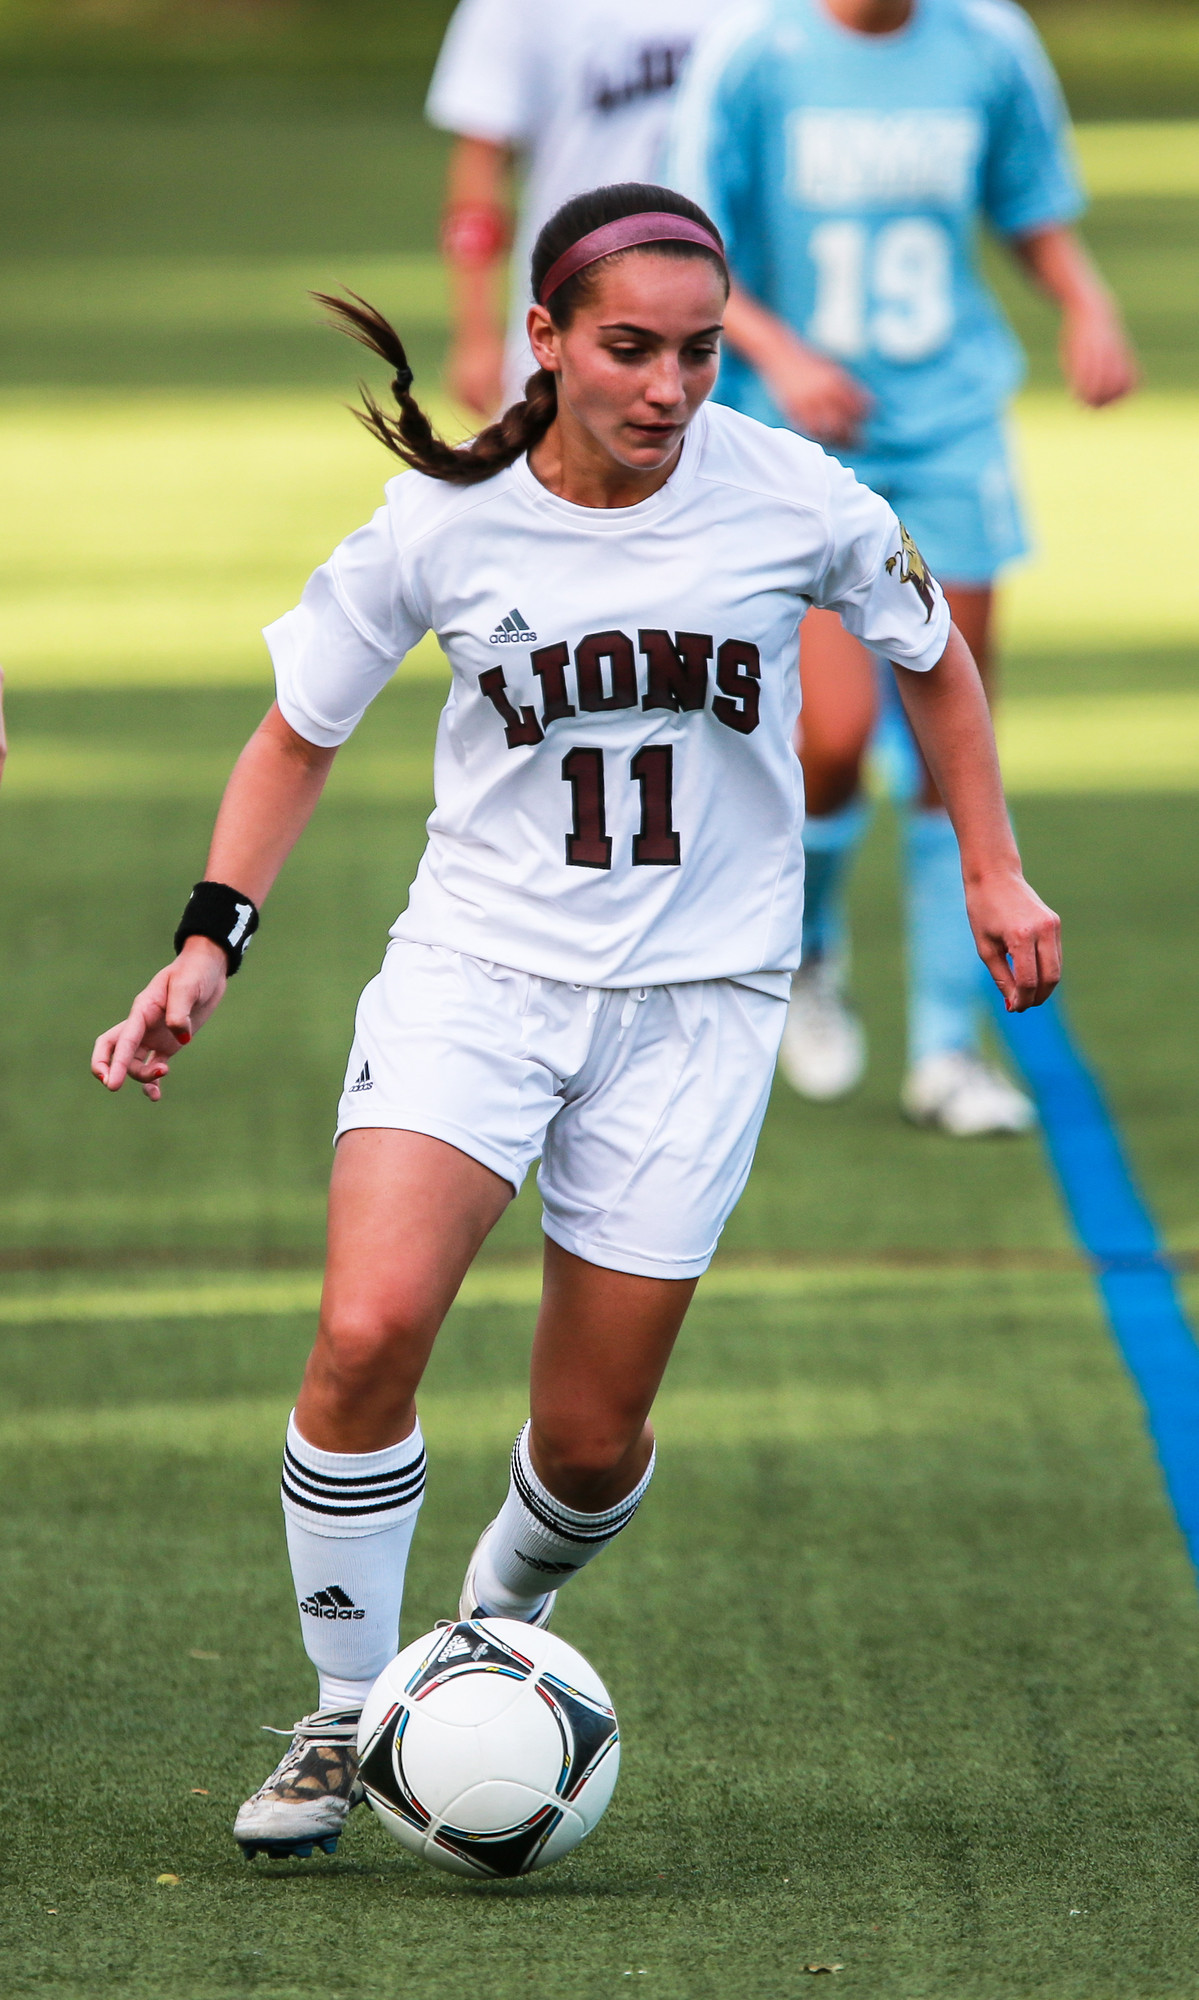 Alicia Mercurio is part of a much deeper Molloy women's team.